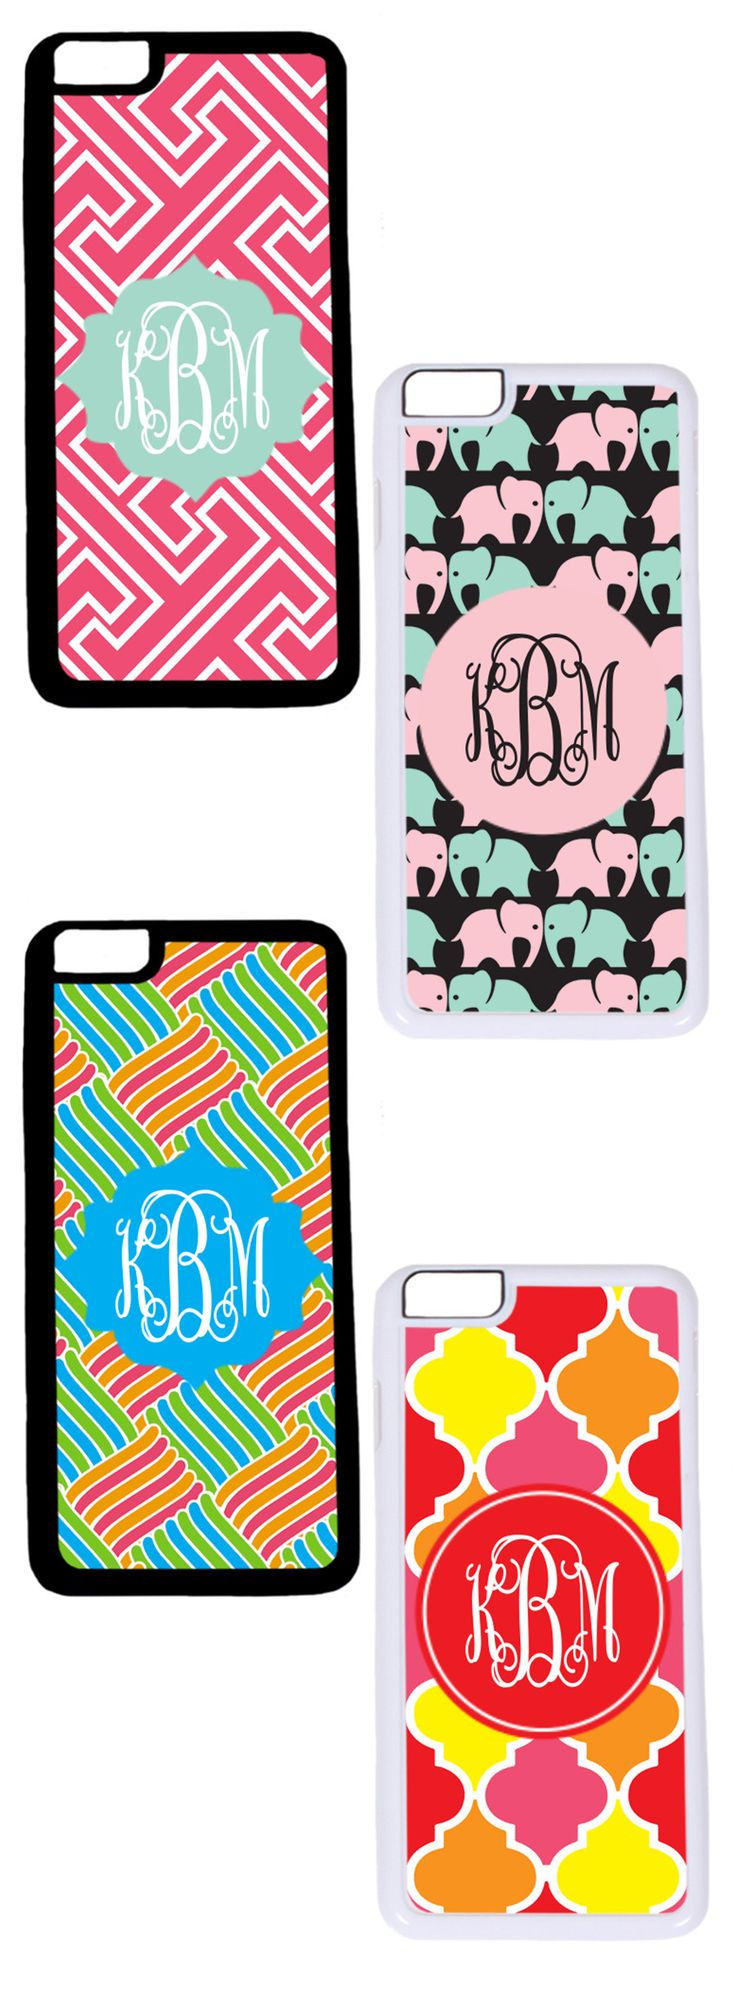 Create your own cell phone case on Marleylilly.com! These personalized iPhone Cases come in a variety of patterns, including seersucker, and not only look great, but you can choose between a plastic case and a slightly more protective rubber case. #iPhone #creative #design #electronic #personalize